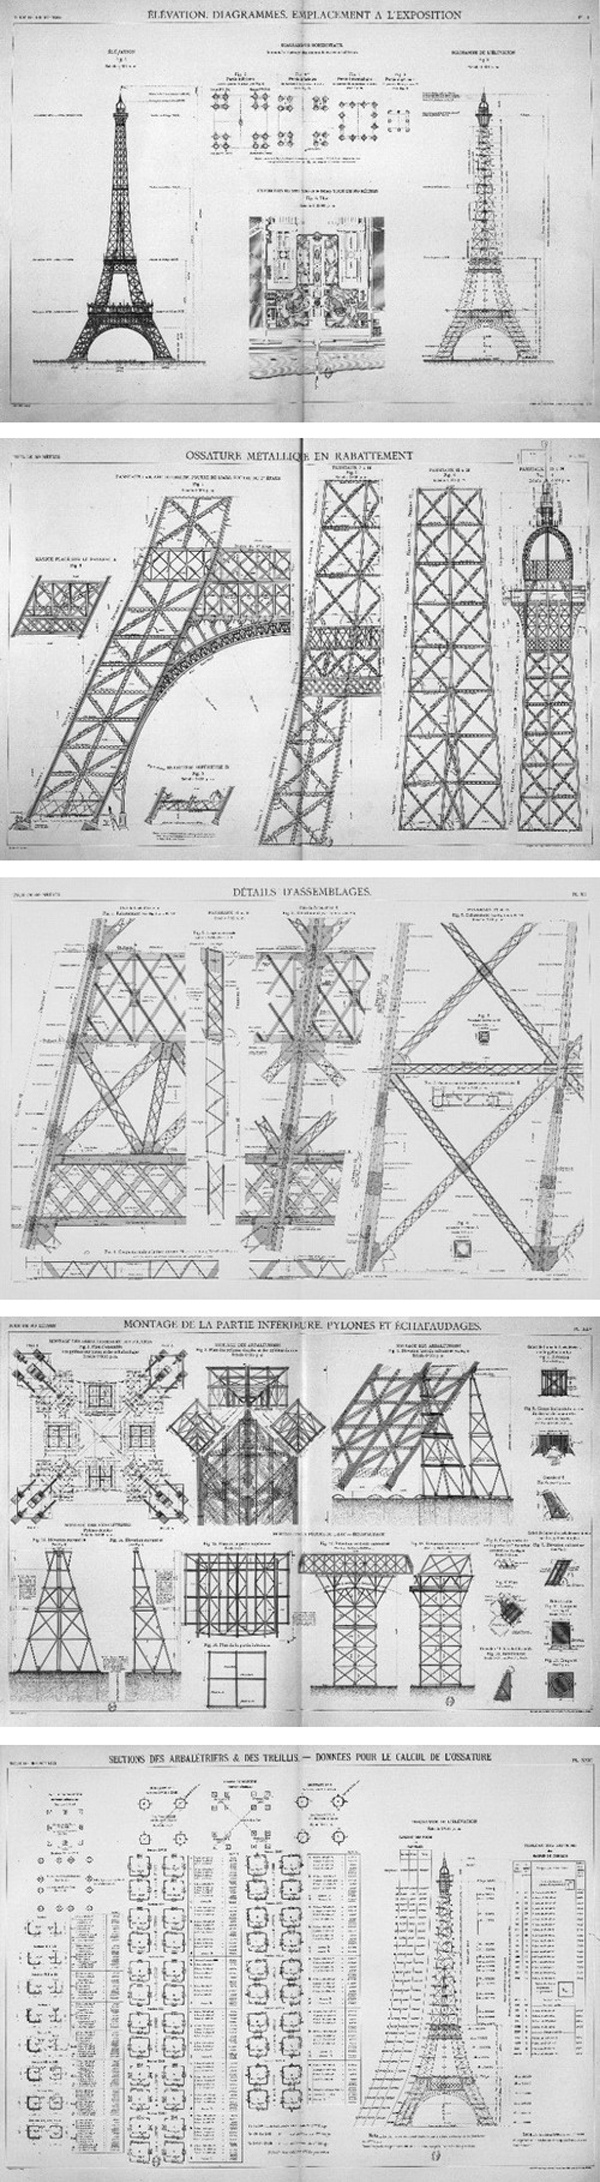 Blueprints for the eiffel tower named after the engineer gustave blueprints for the eiffel tower named after the engineer gustave eiffel whose company designed malvernweather Choice Image